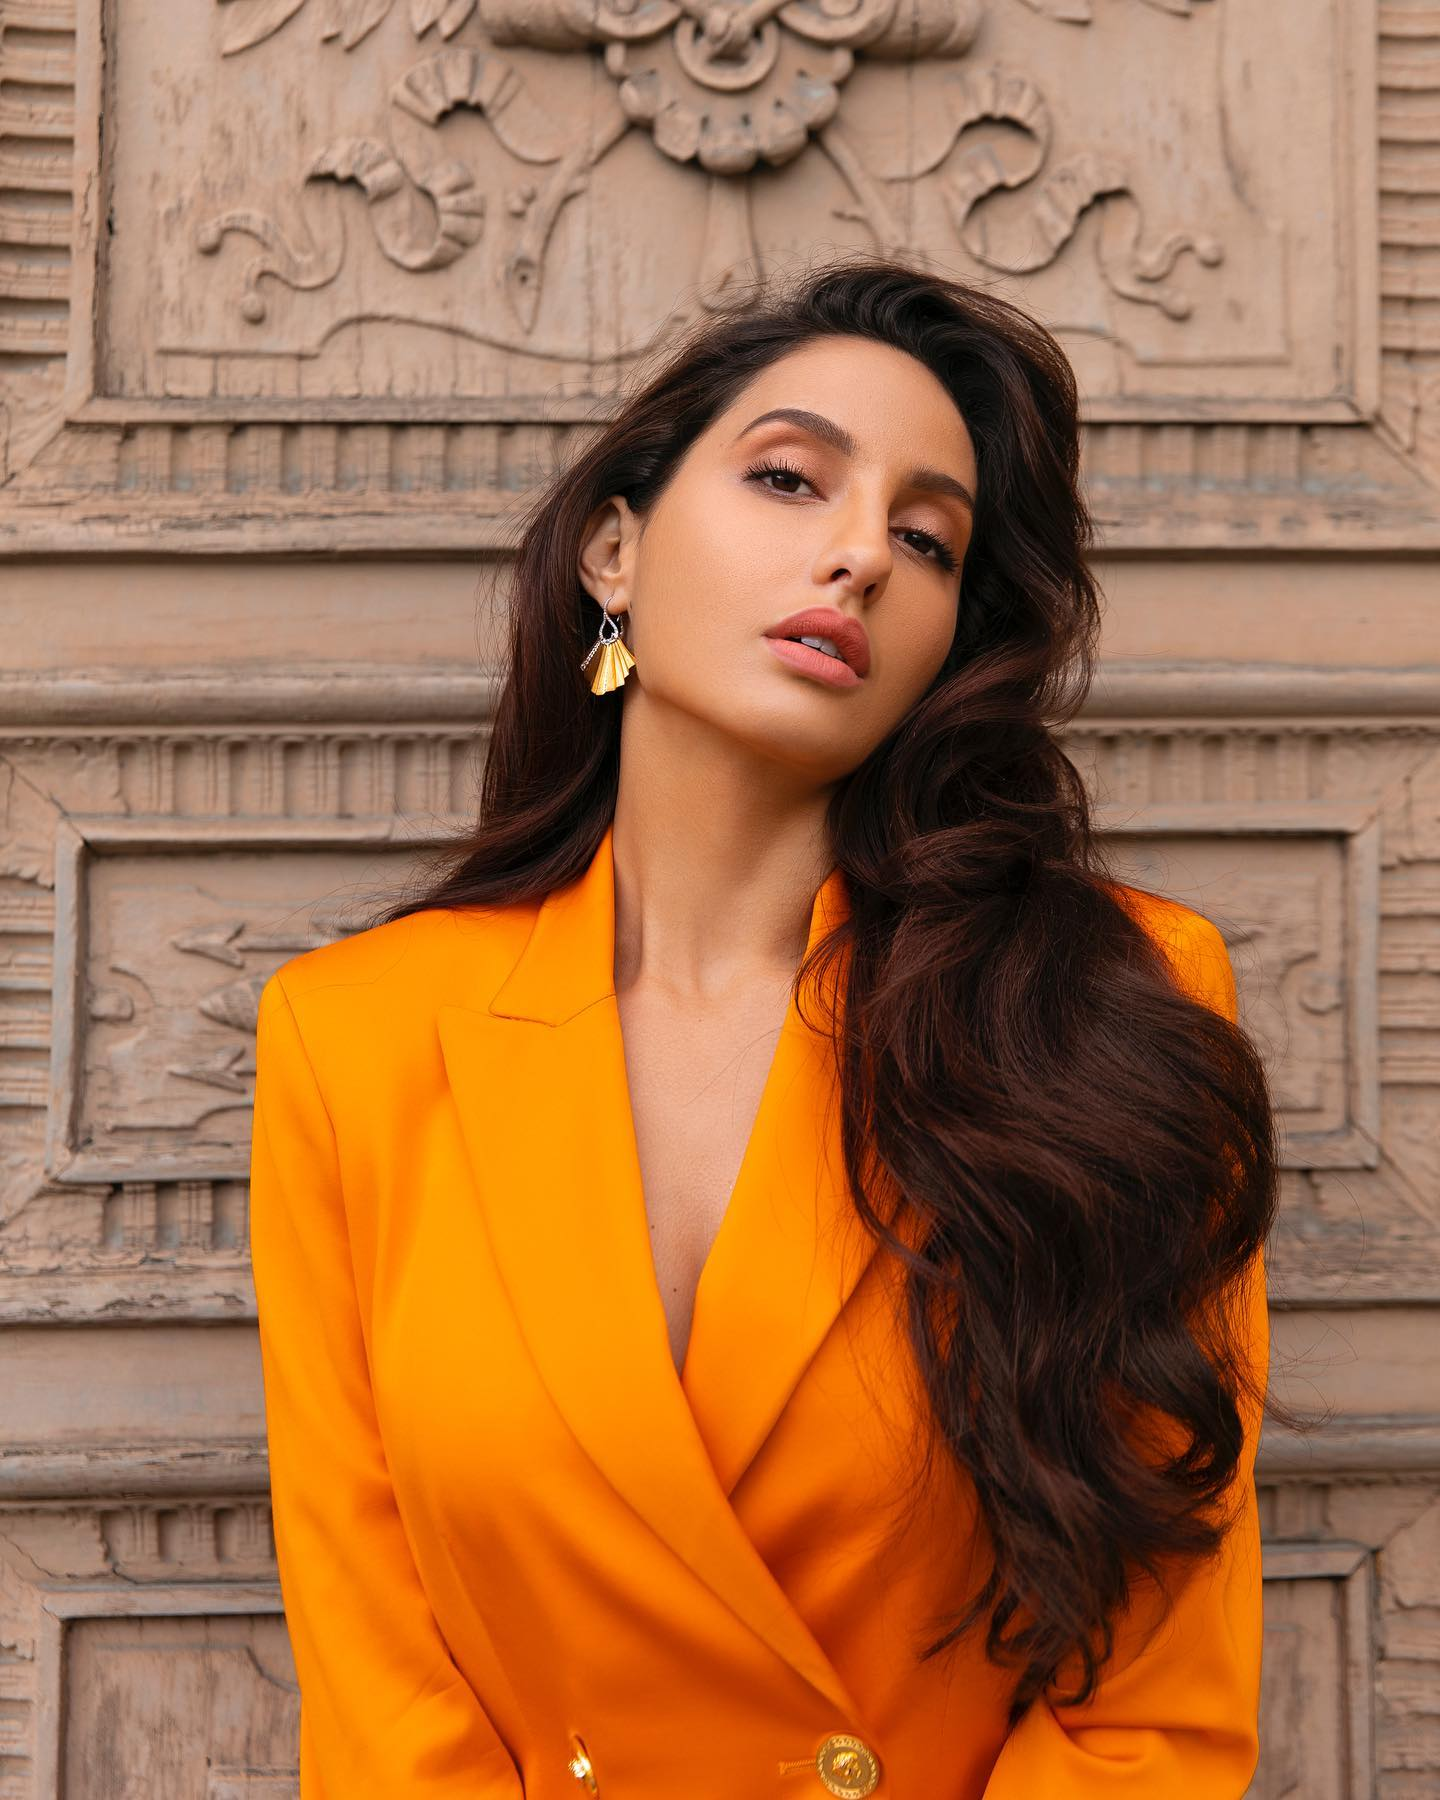 Nora Fatehi HD Image - Photo Download | HD Wallpaper Download